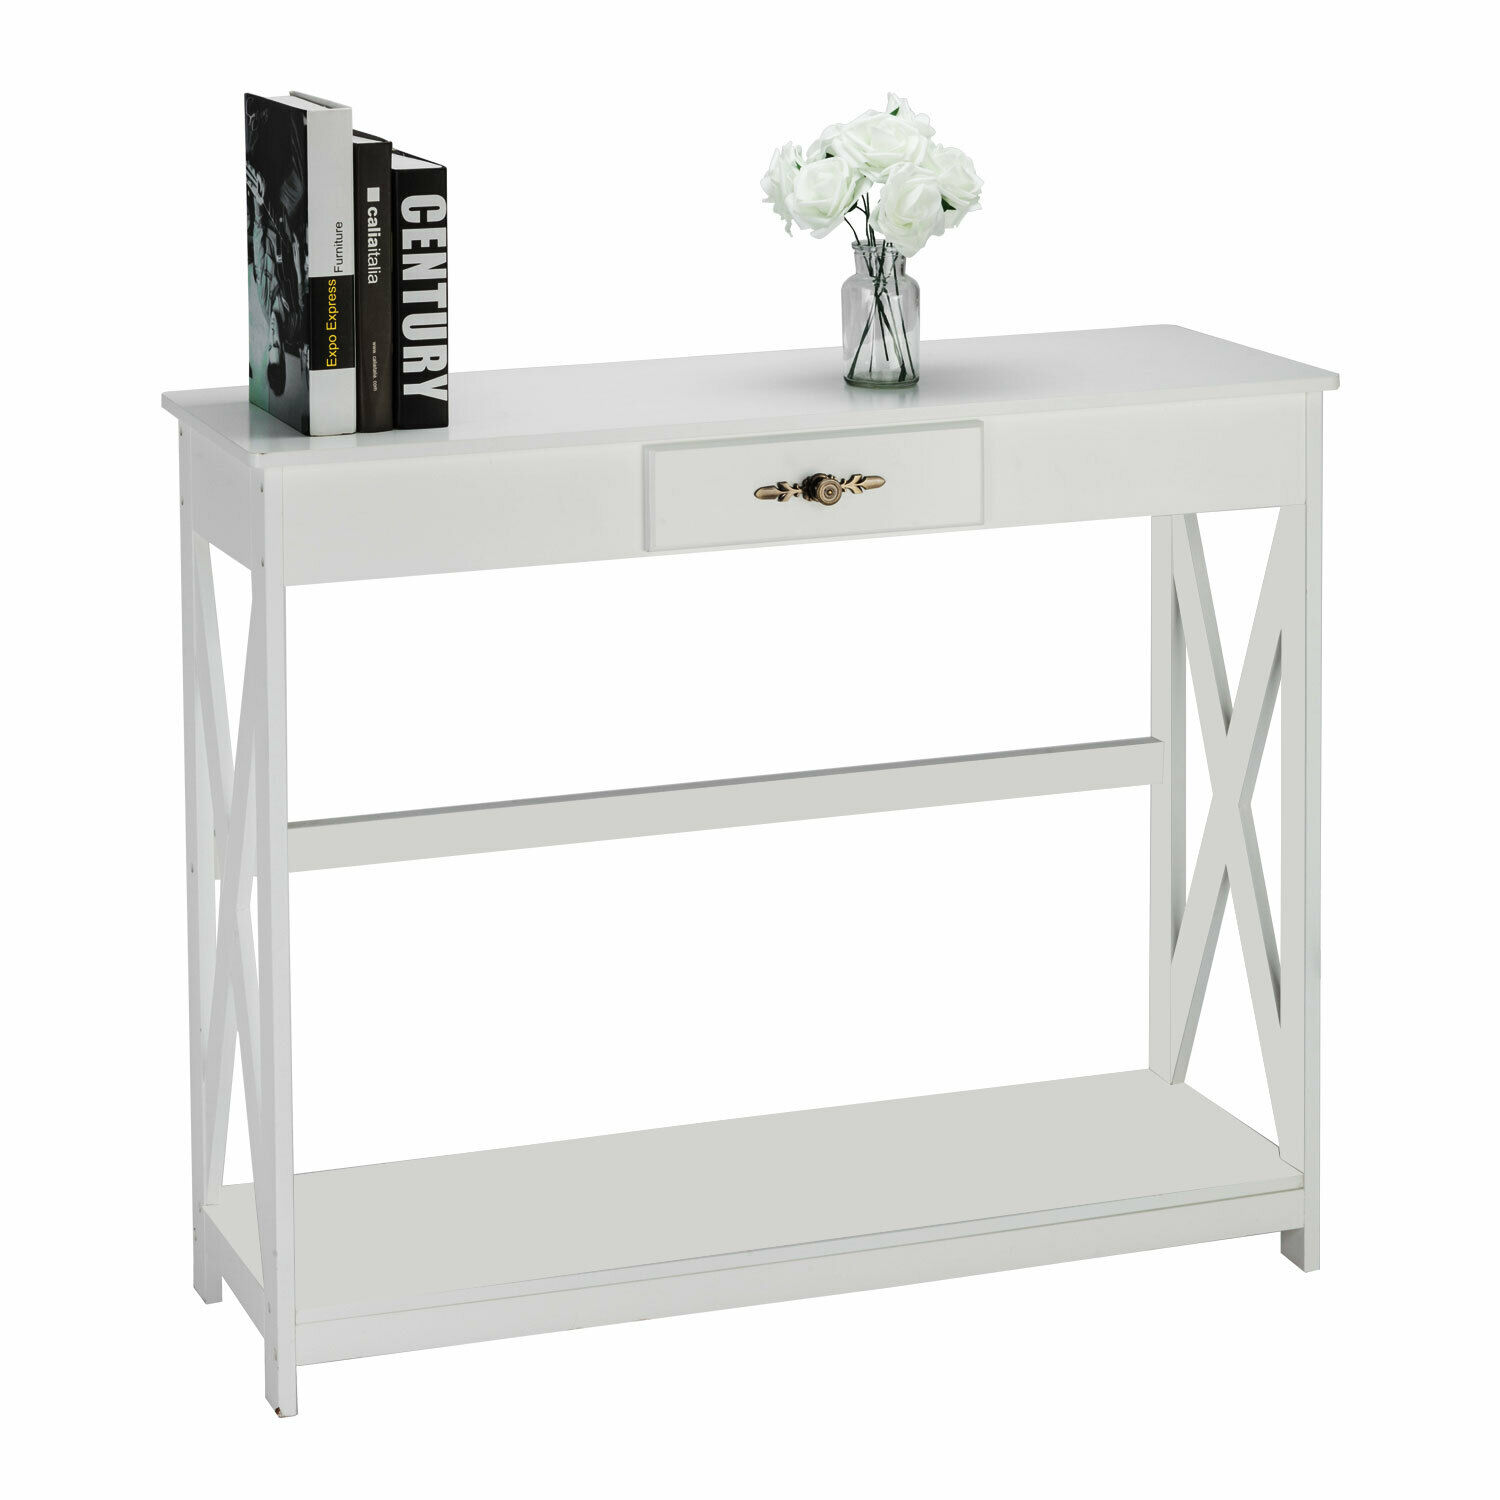 Picture of: Home Craft Console Table White For Sale Online Ebay